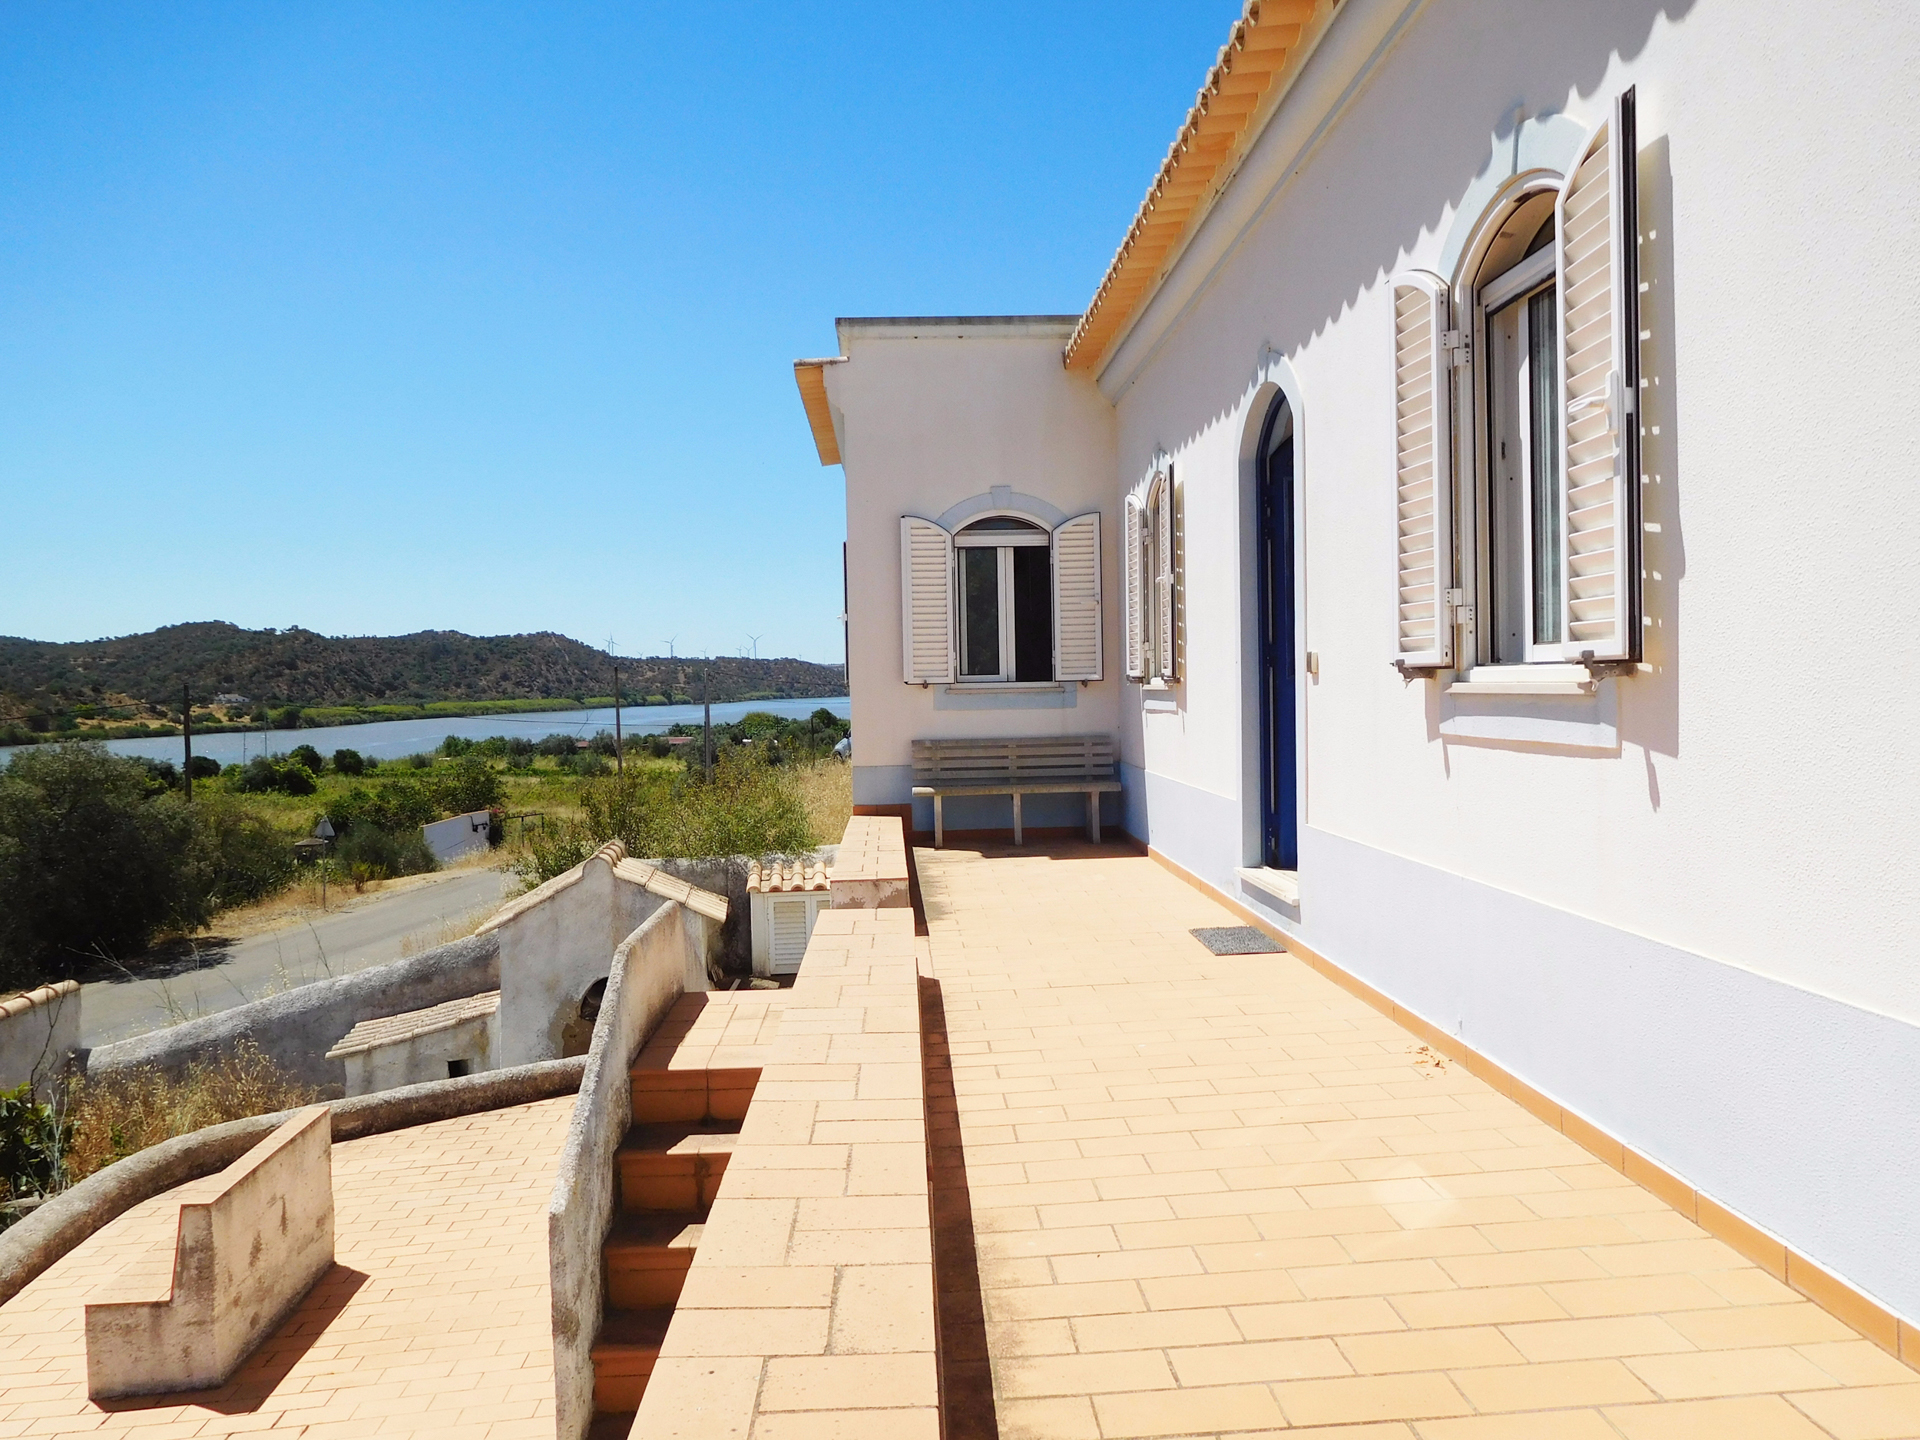 2 Bedroom Villa with Roof Terrace and Plot on Riverside, near Alcoutim | TV895